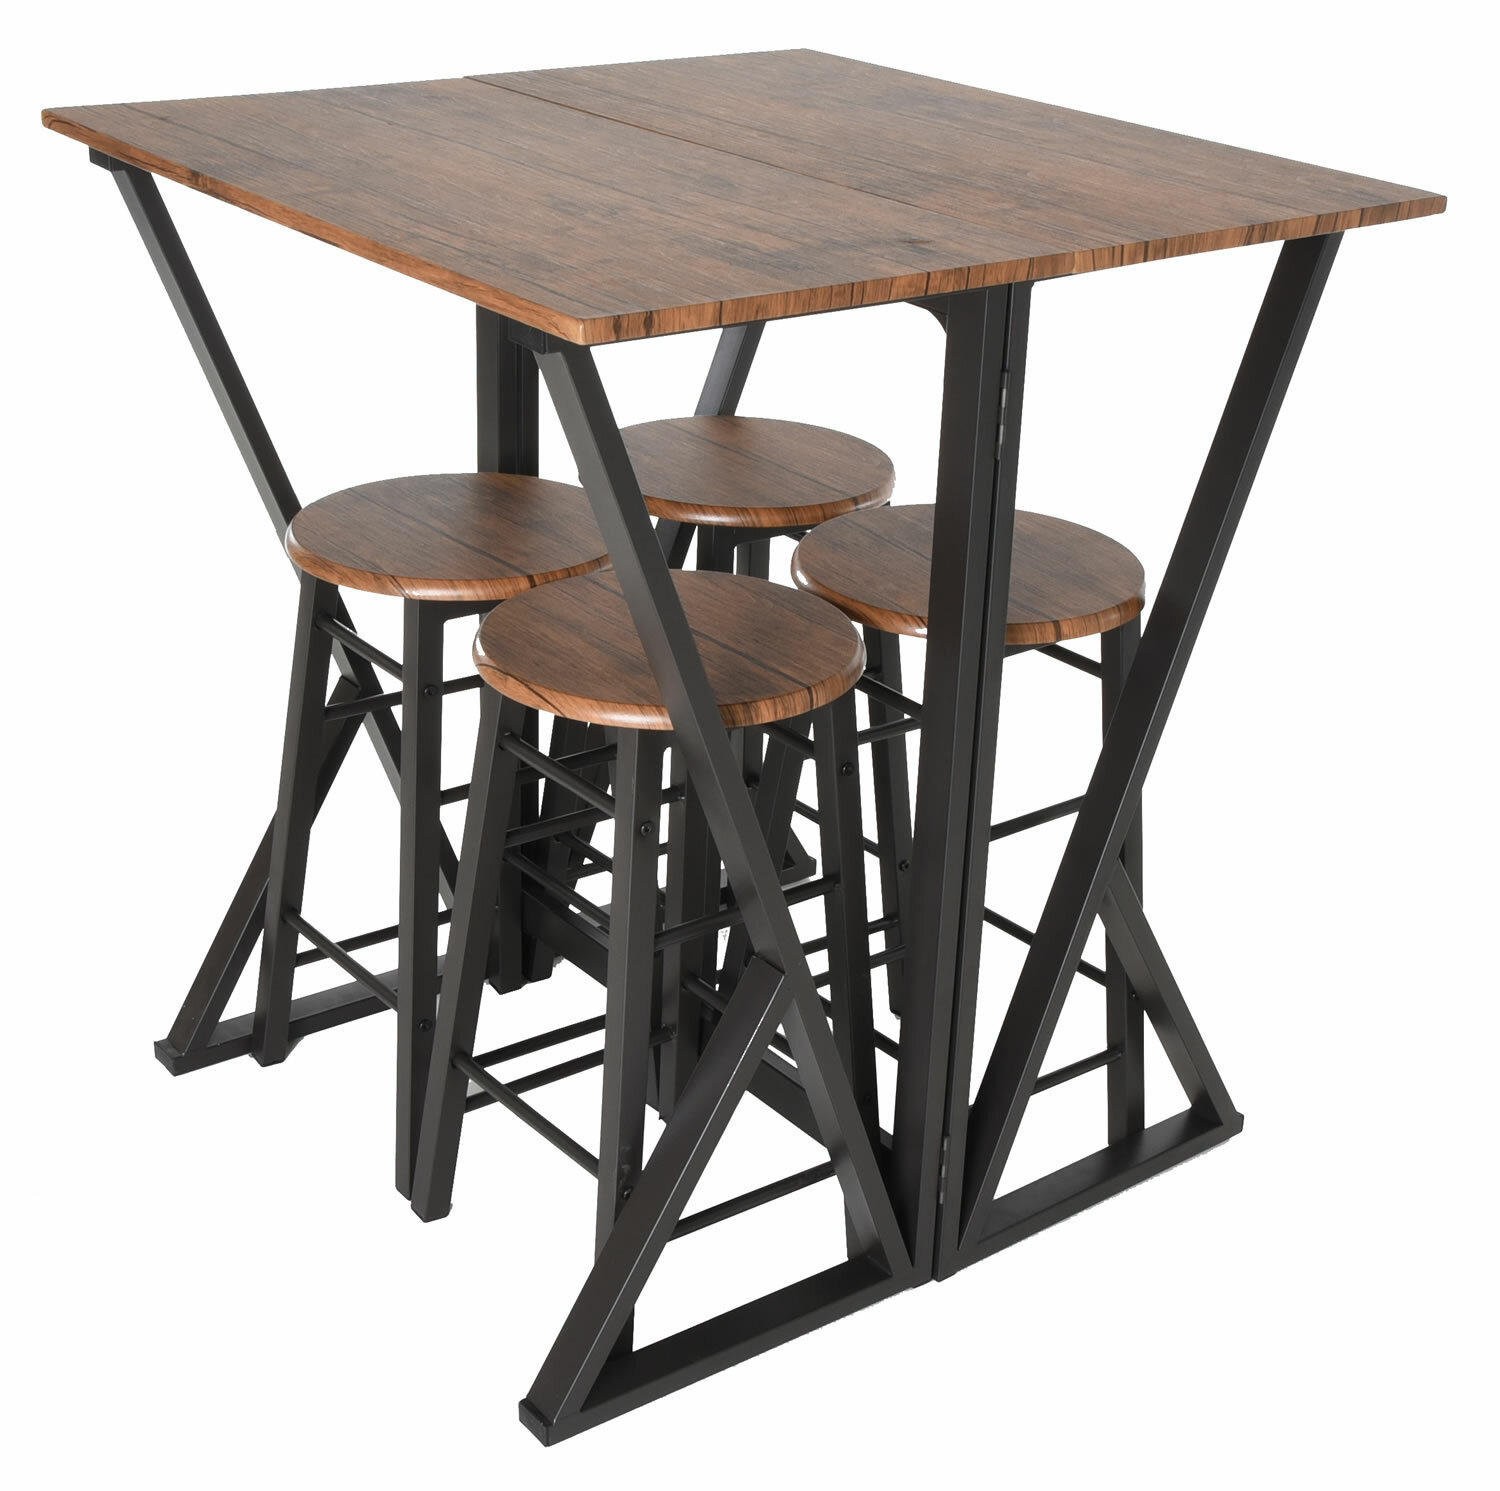 Maloney 5 Piece Pub Table Set With Regard To 2018 Maloney 3 Piece Breakfast Nook Dining Sets (Photo 8 of 20)